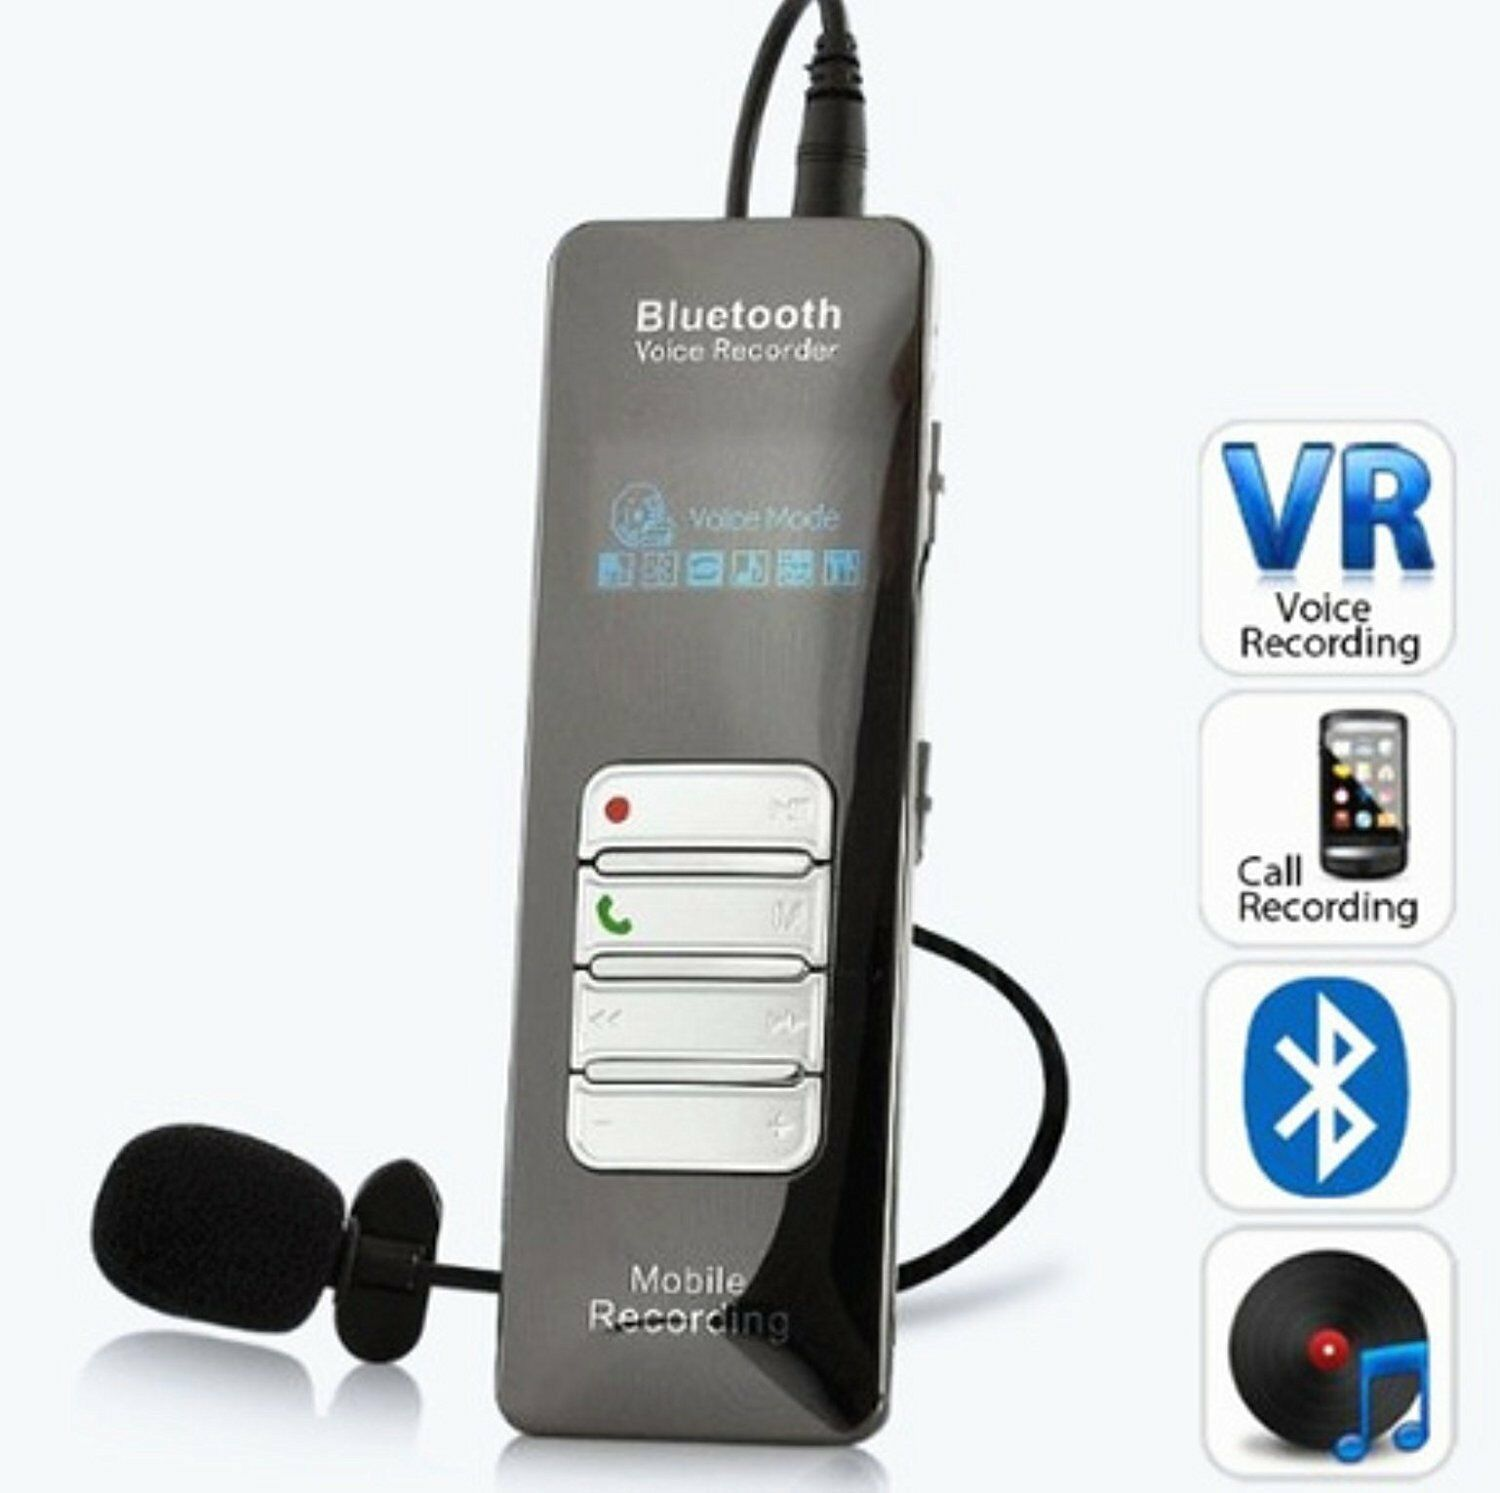 NEW 4GB Voice & Call MOBILE PHONE RECORDER with Bluetooth, One-button Recording